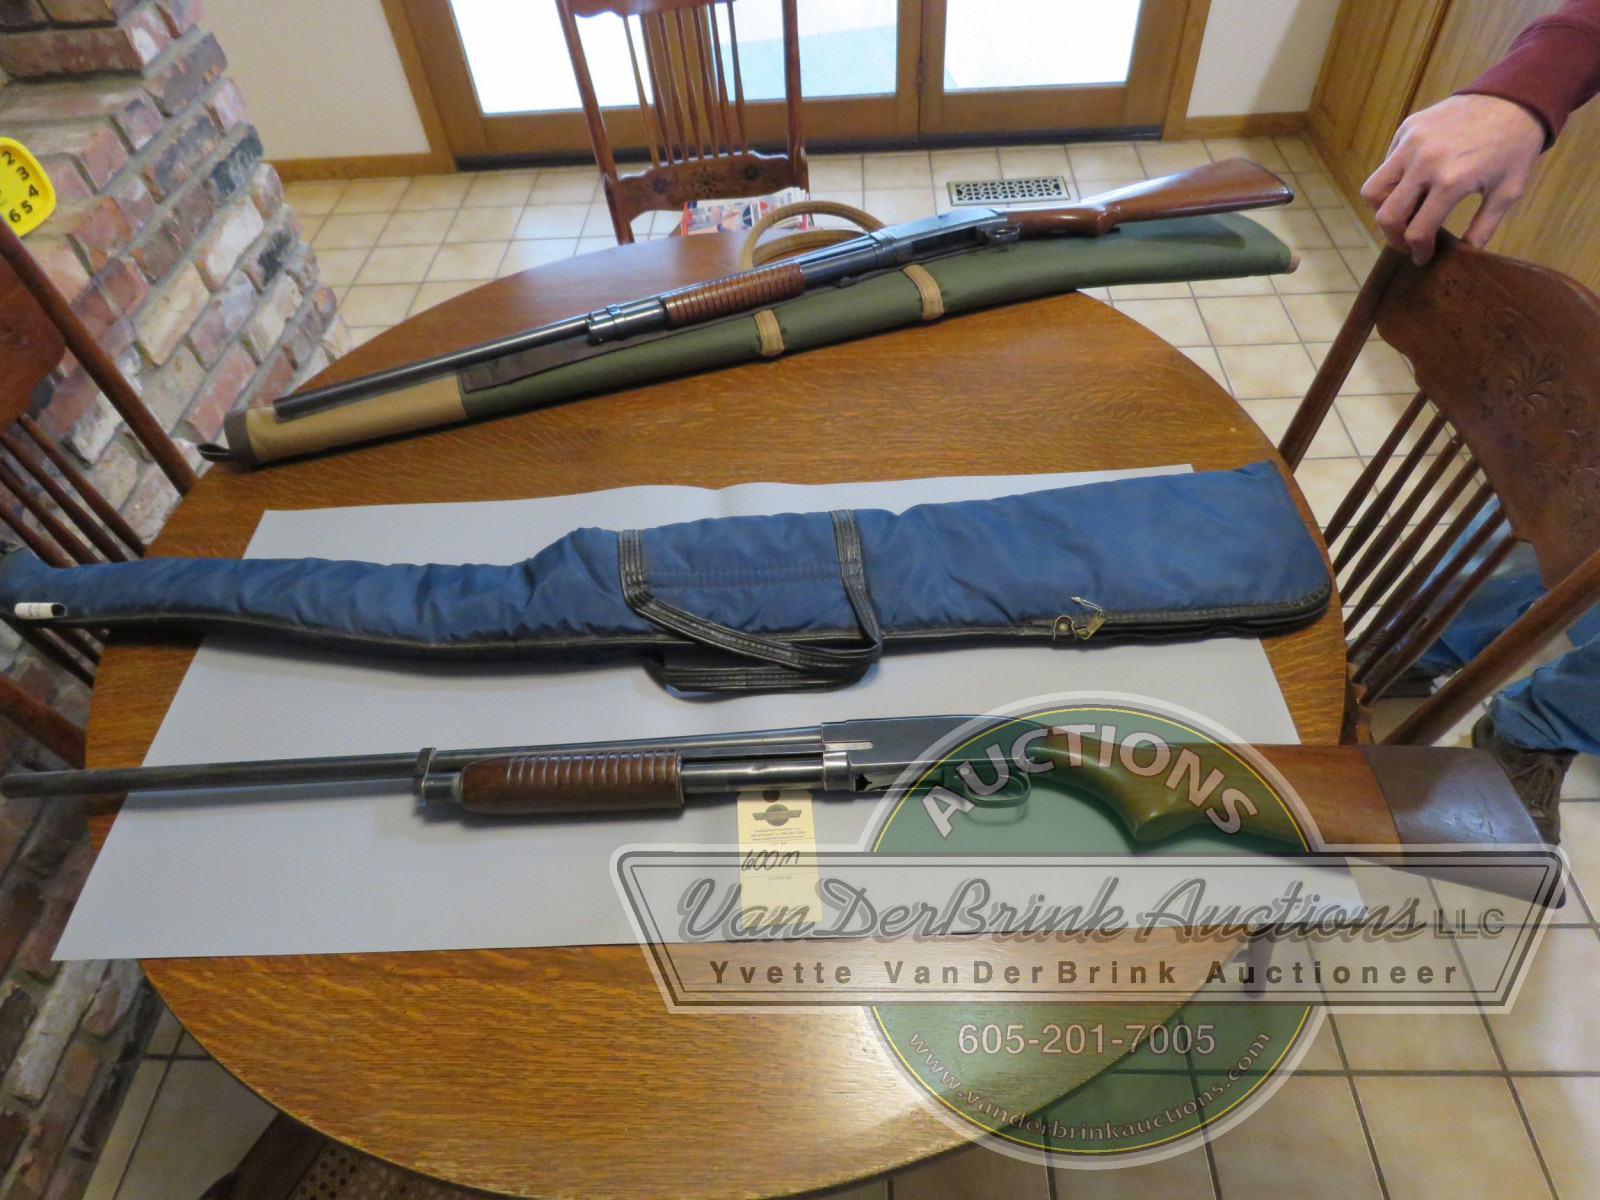 Winchester Model 25 12 guage pump shotgun 76236 - Image 1